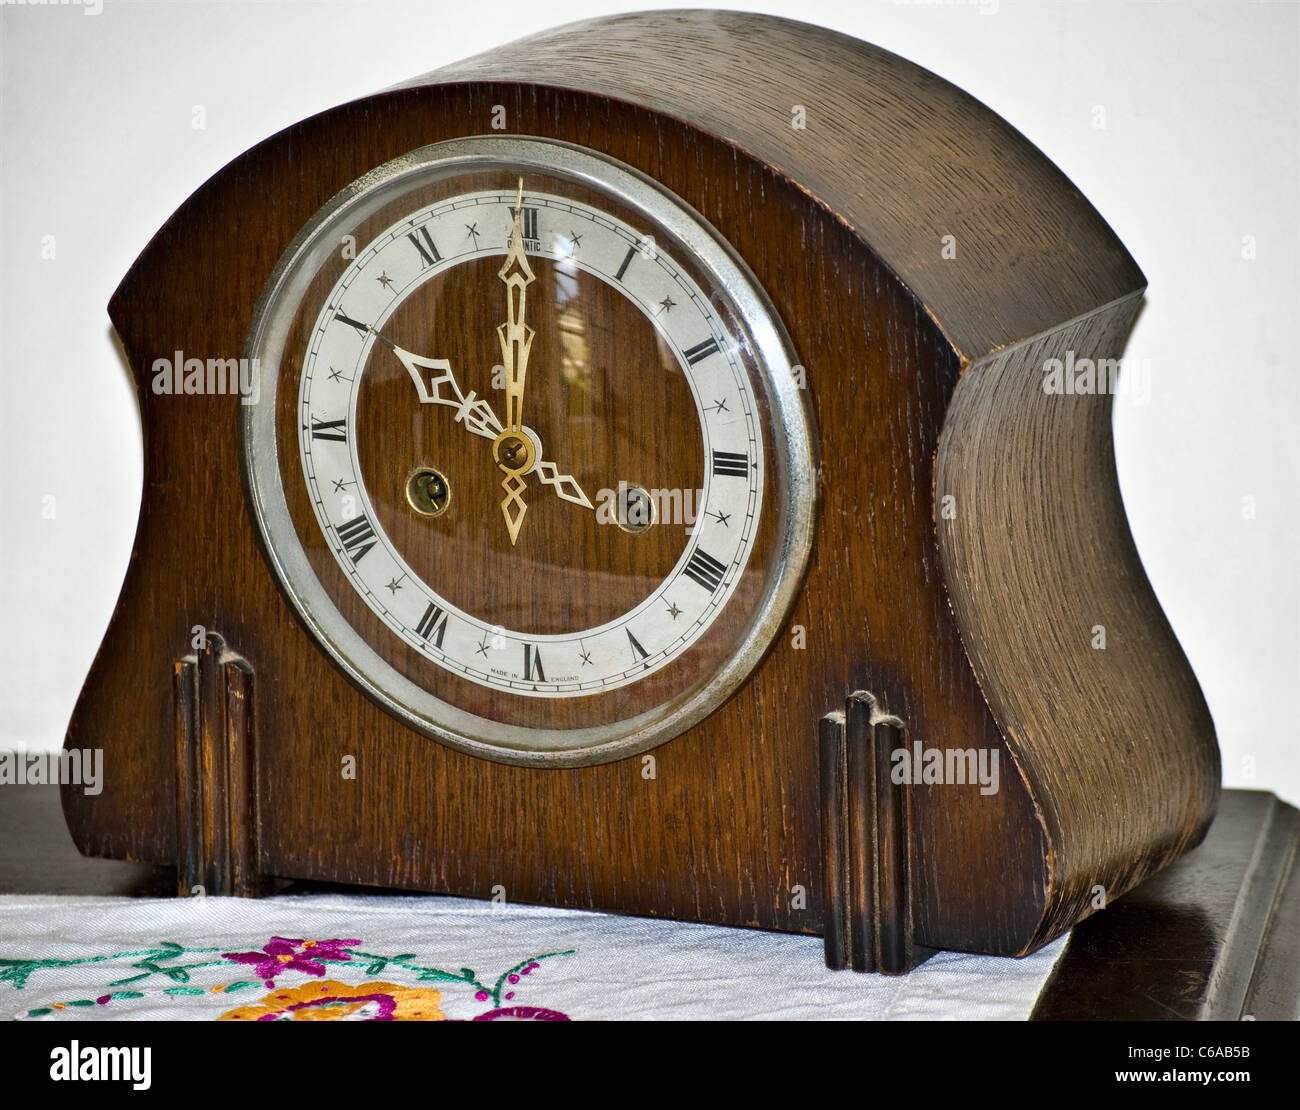 An early wooden mantelpiece clock (timepiece) - Stock Image